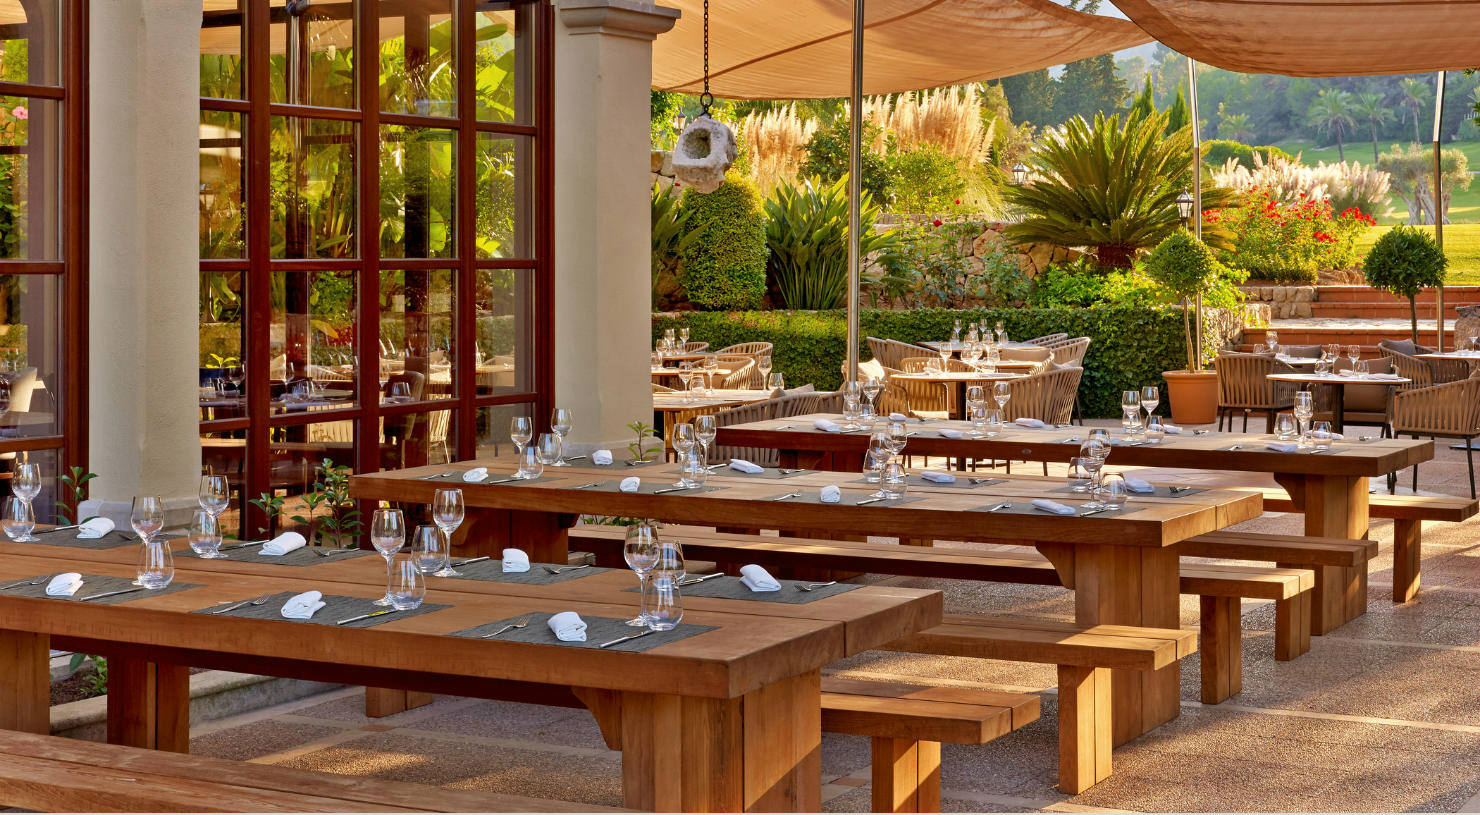 Enjoy a refreshing drink or authentic Majorcan food overlooking the son vida golf course